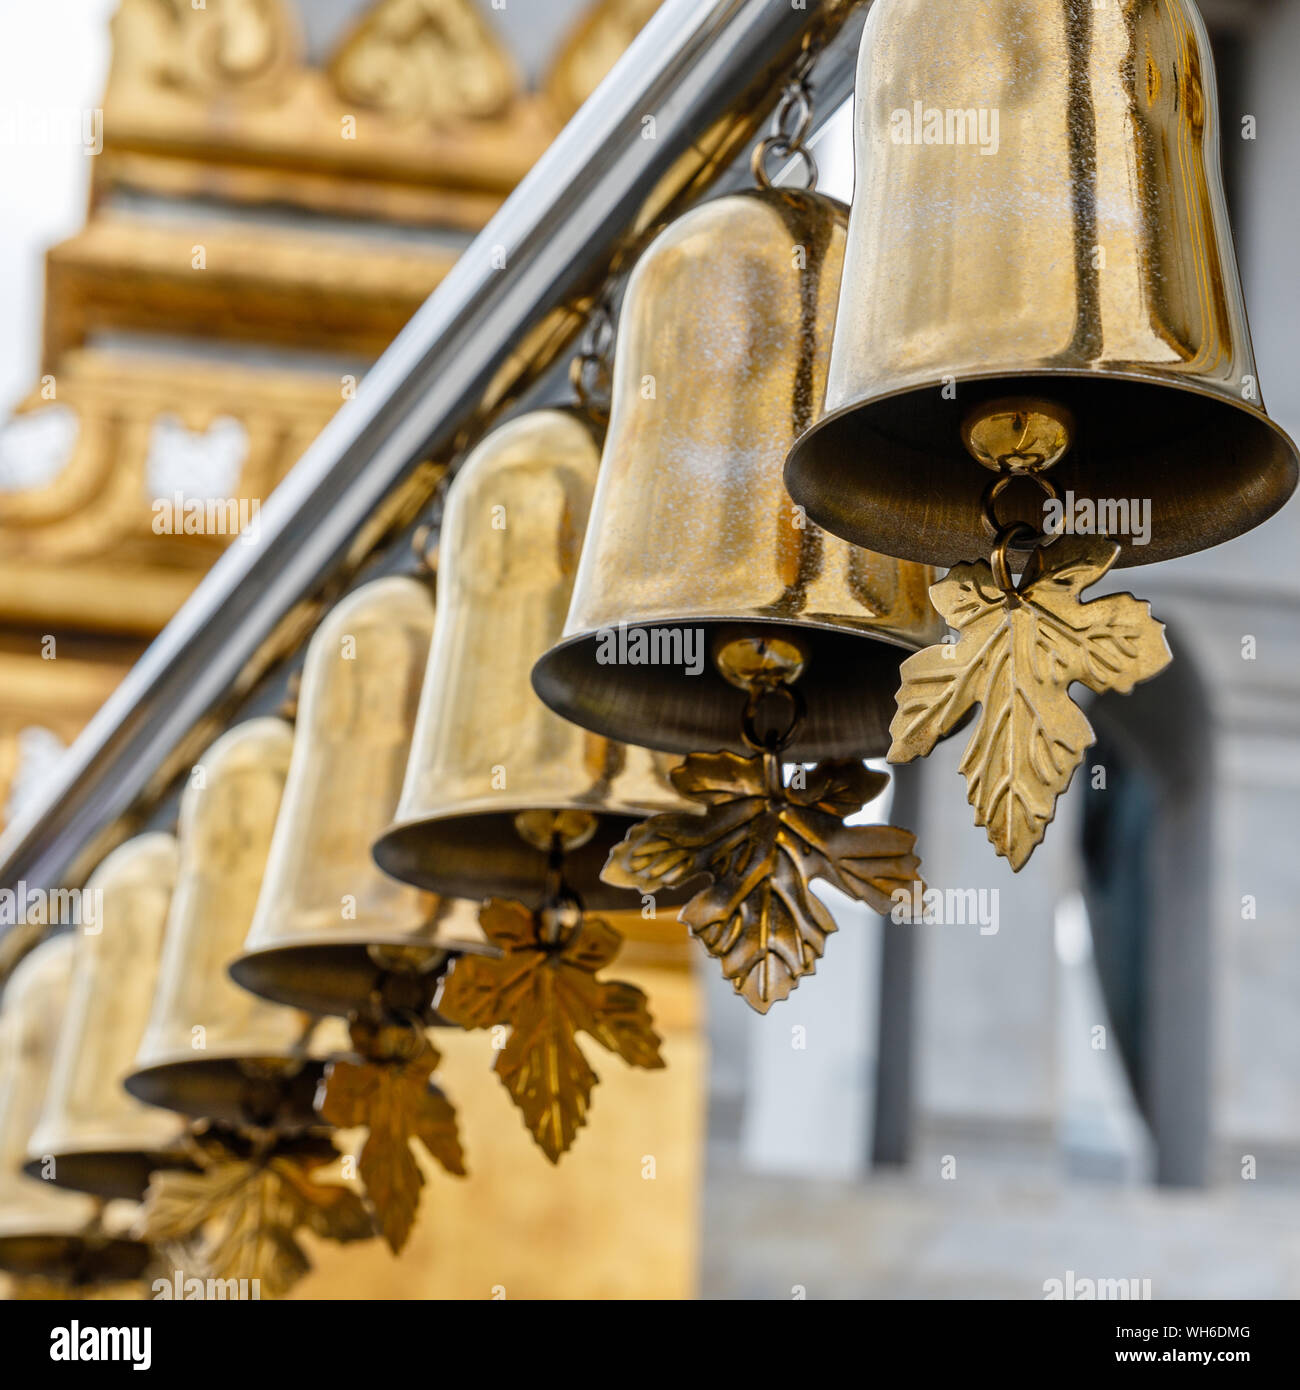 Golden bells at Buddhist temple Wat Traimit, Bangkok, Thailand. Square image. Stock Photo